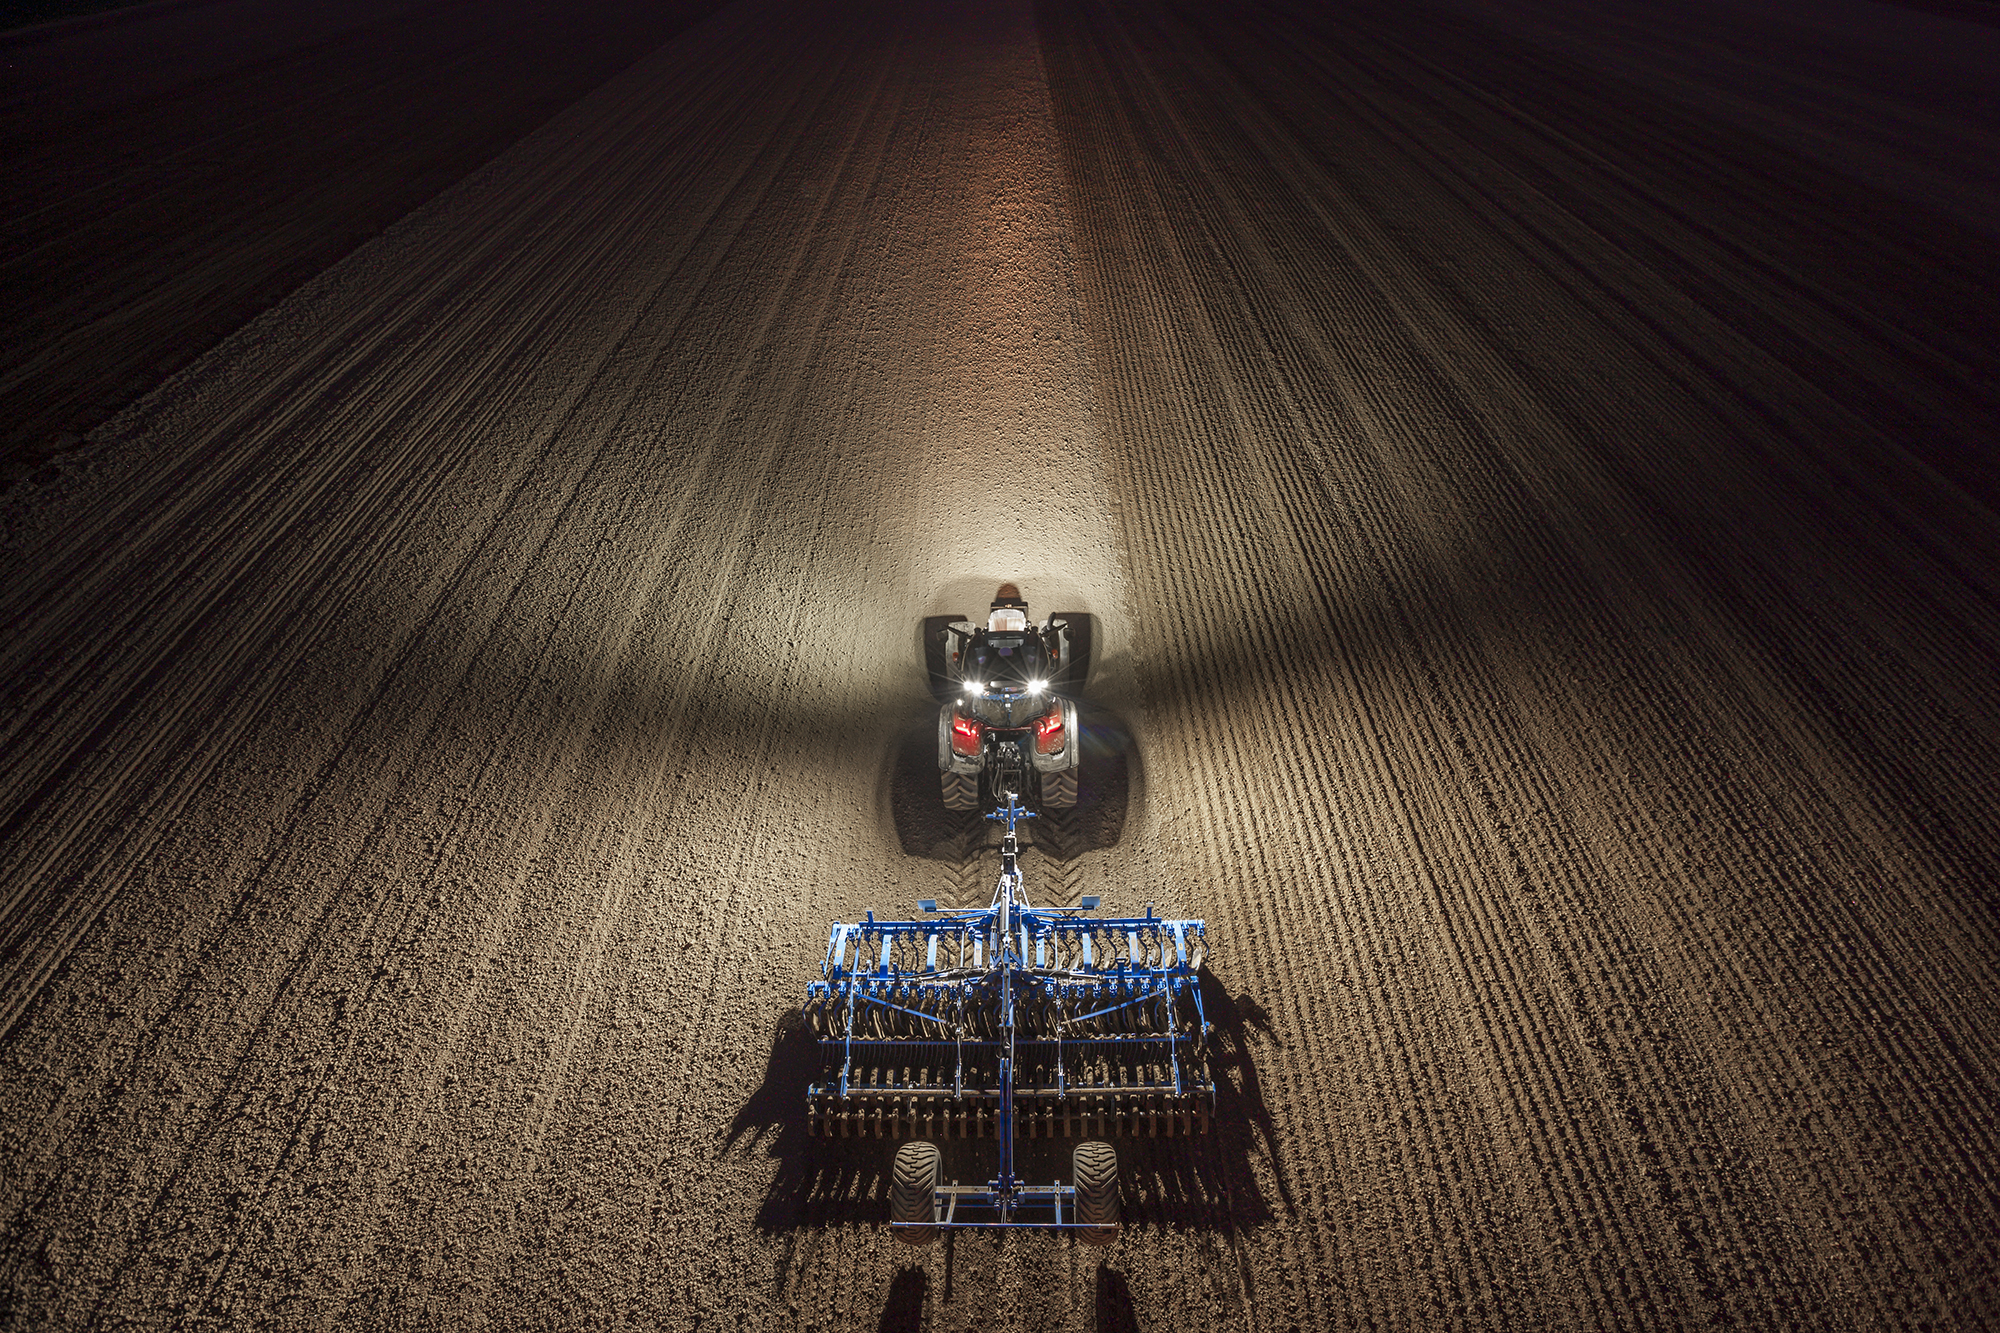 valtra t4 series tractor on the field at night with working lights